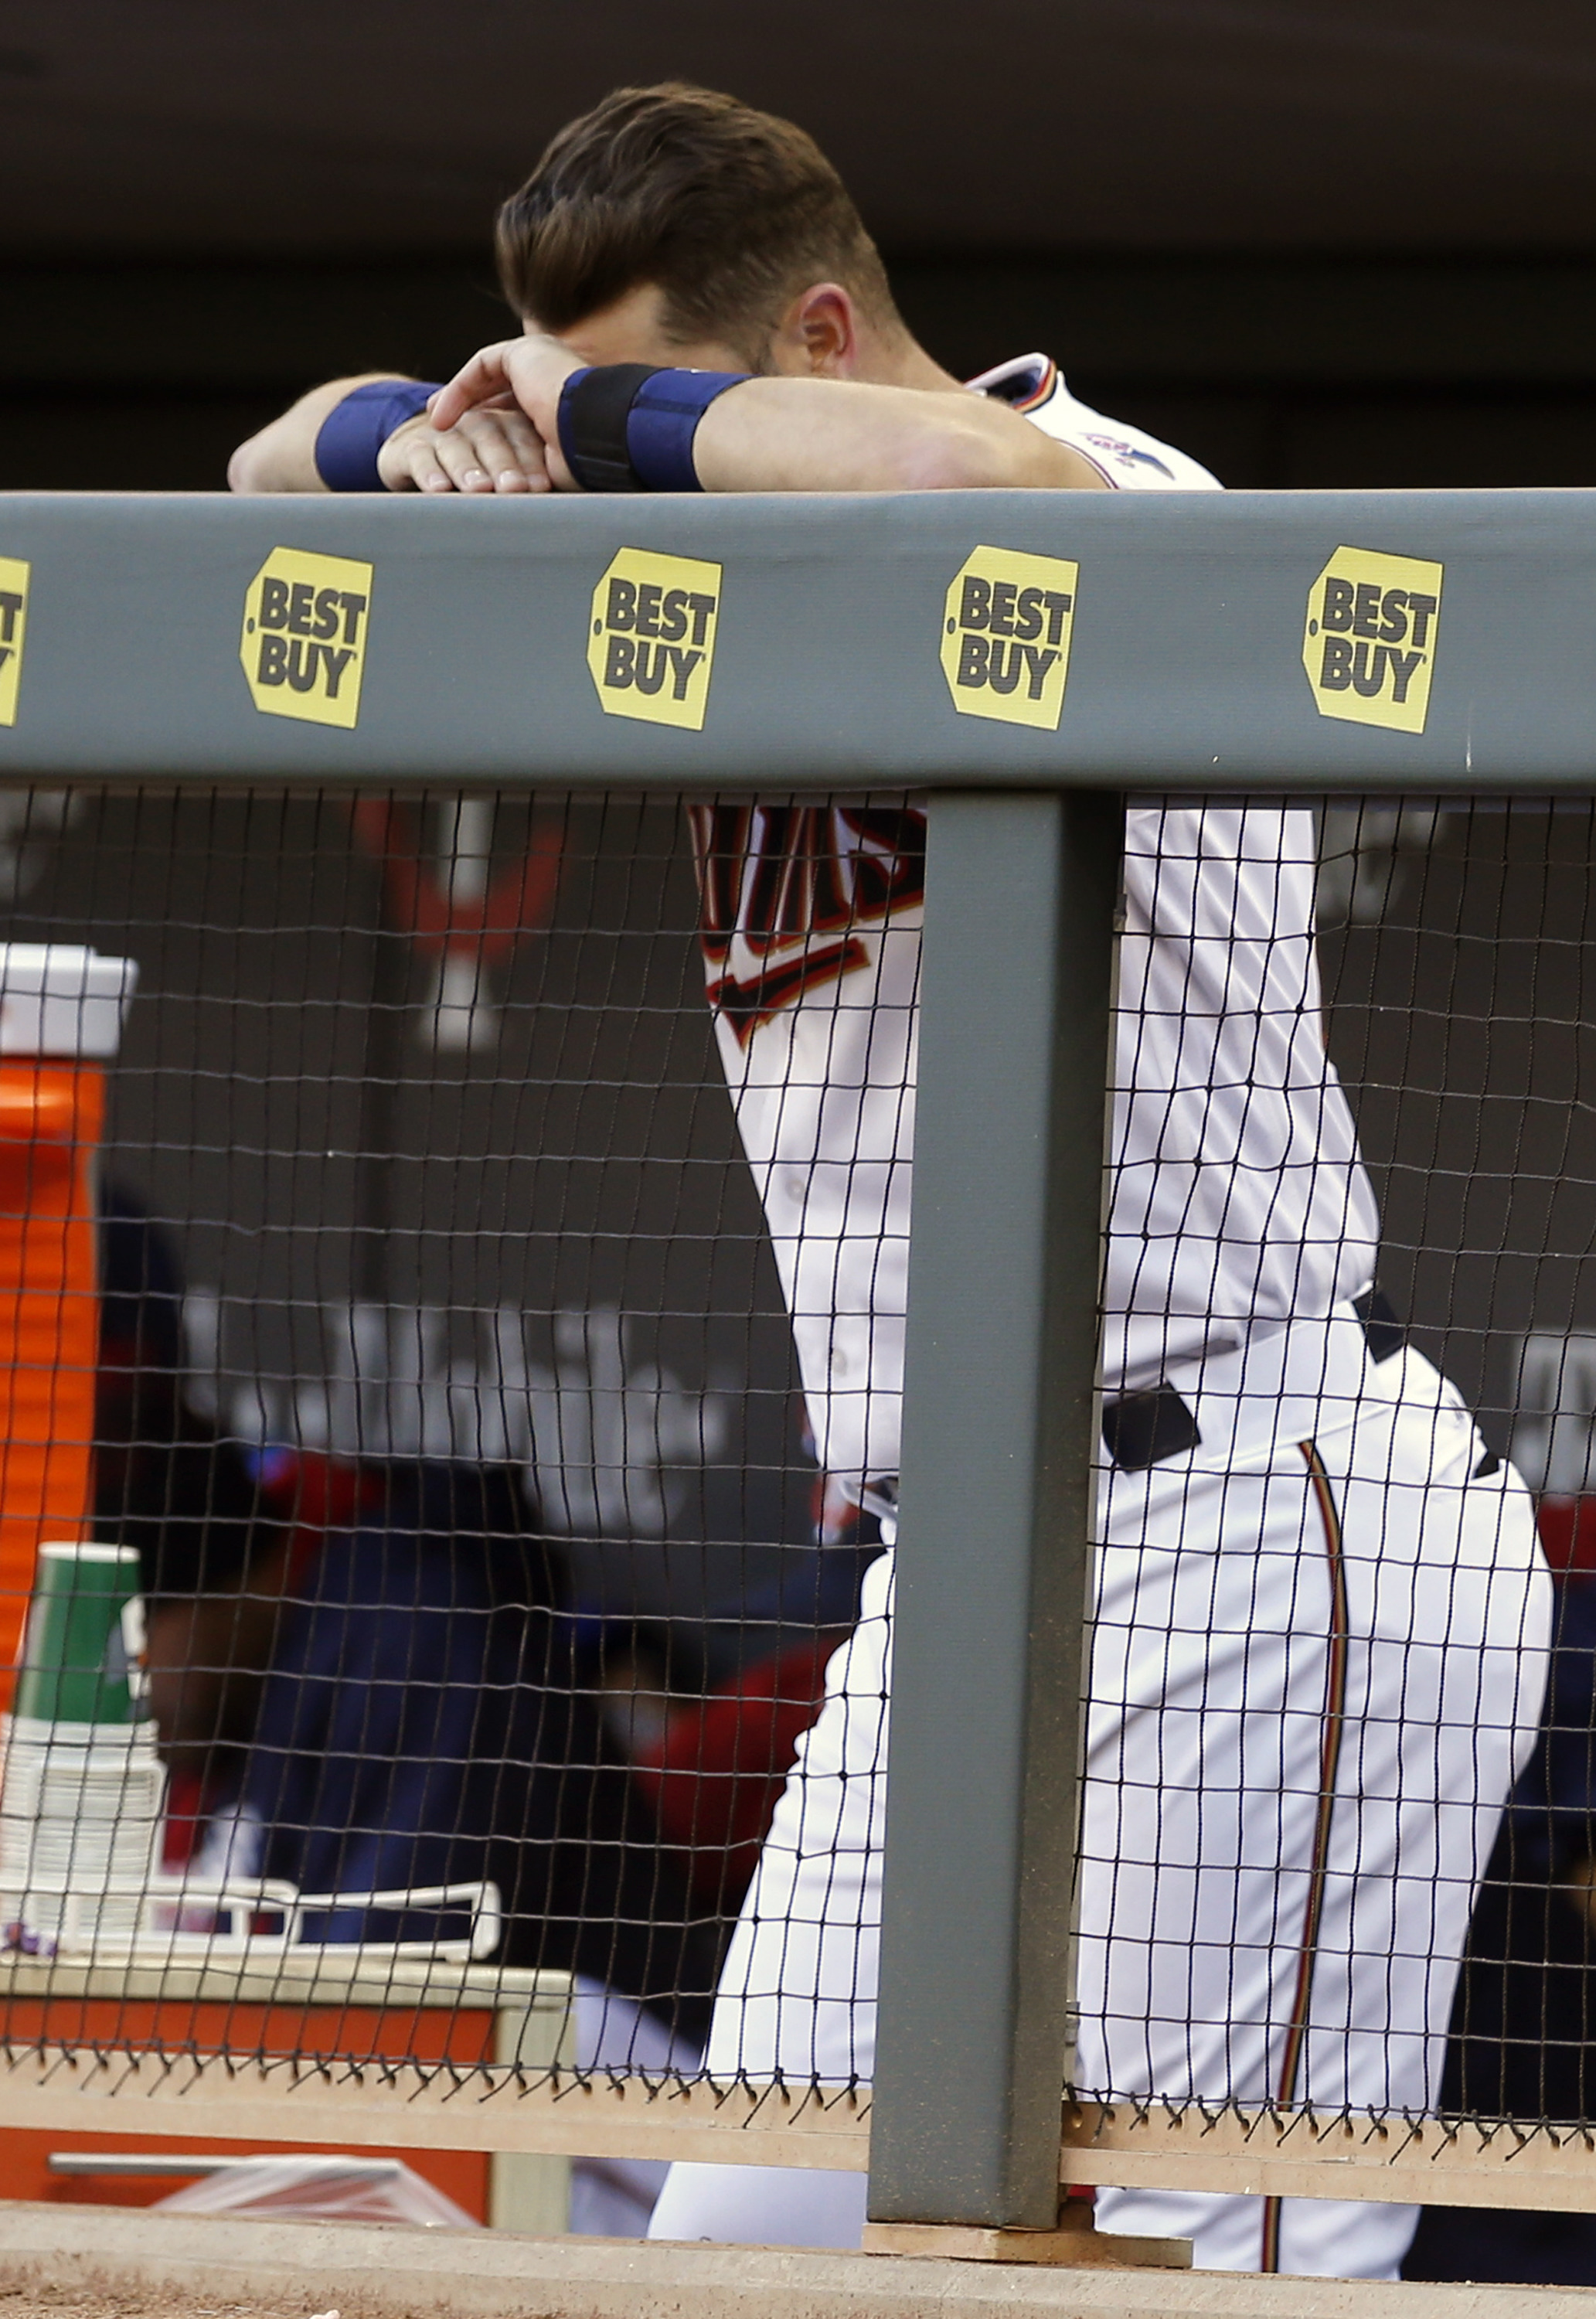 Minnesota Twins Trevor Plouffe rests his head on his hands in the final minutes of a baseball game against the Chicago White Sox Monday, April 11, 2016, in Minneapolis. The White Sox won 4-1, handing the Twins their seventh loss against no wins for the yo